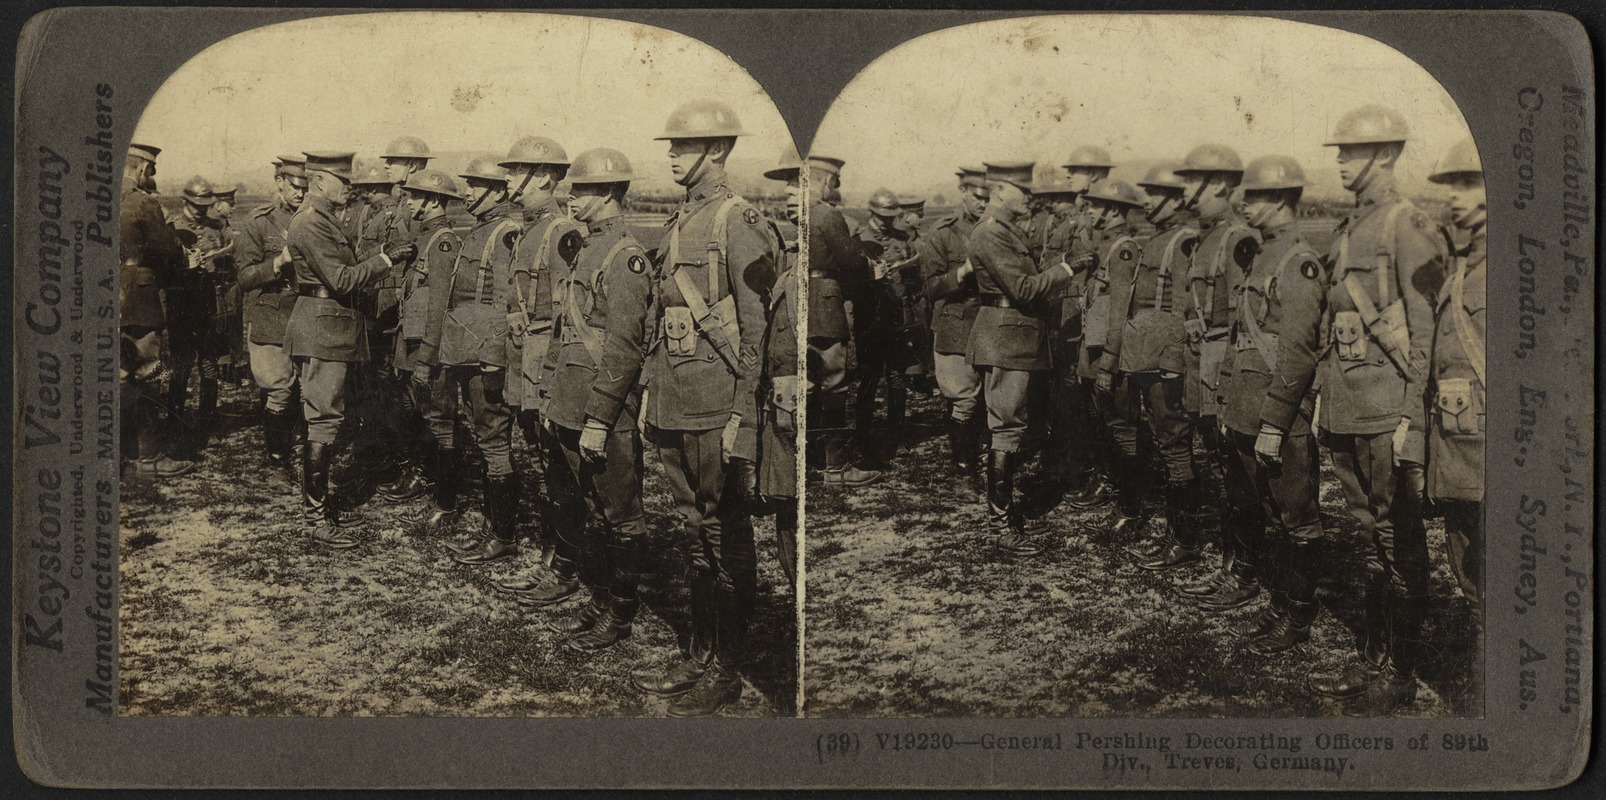 Gen. Pershing decorating officers of 89th Div., Treves